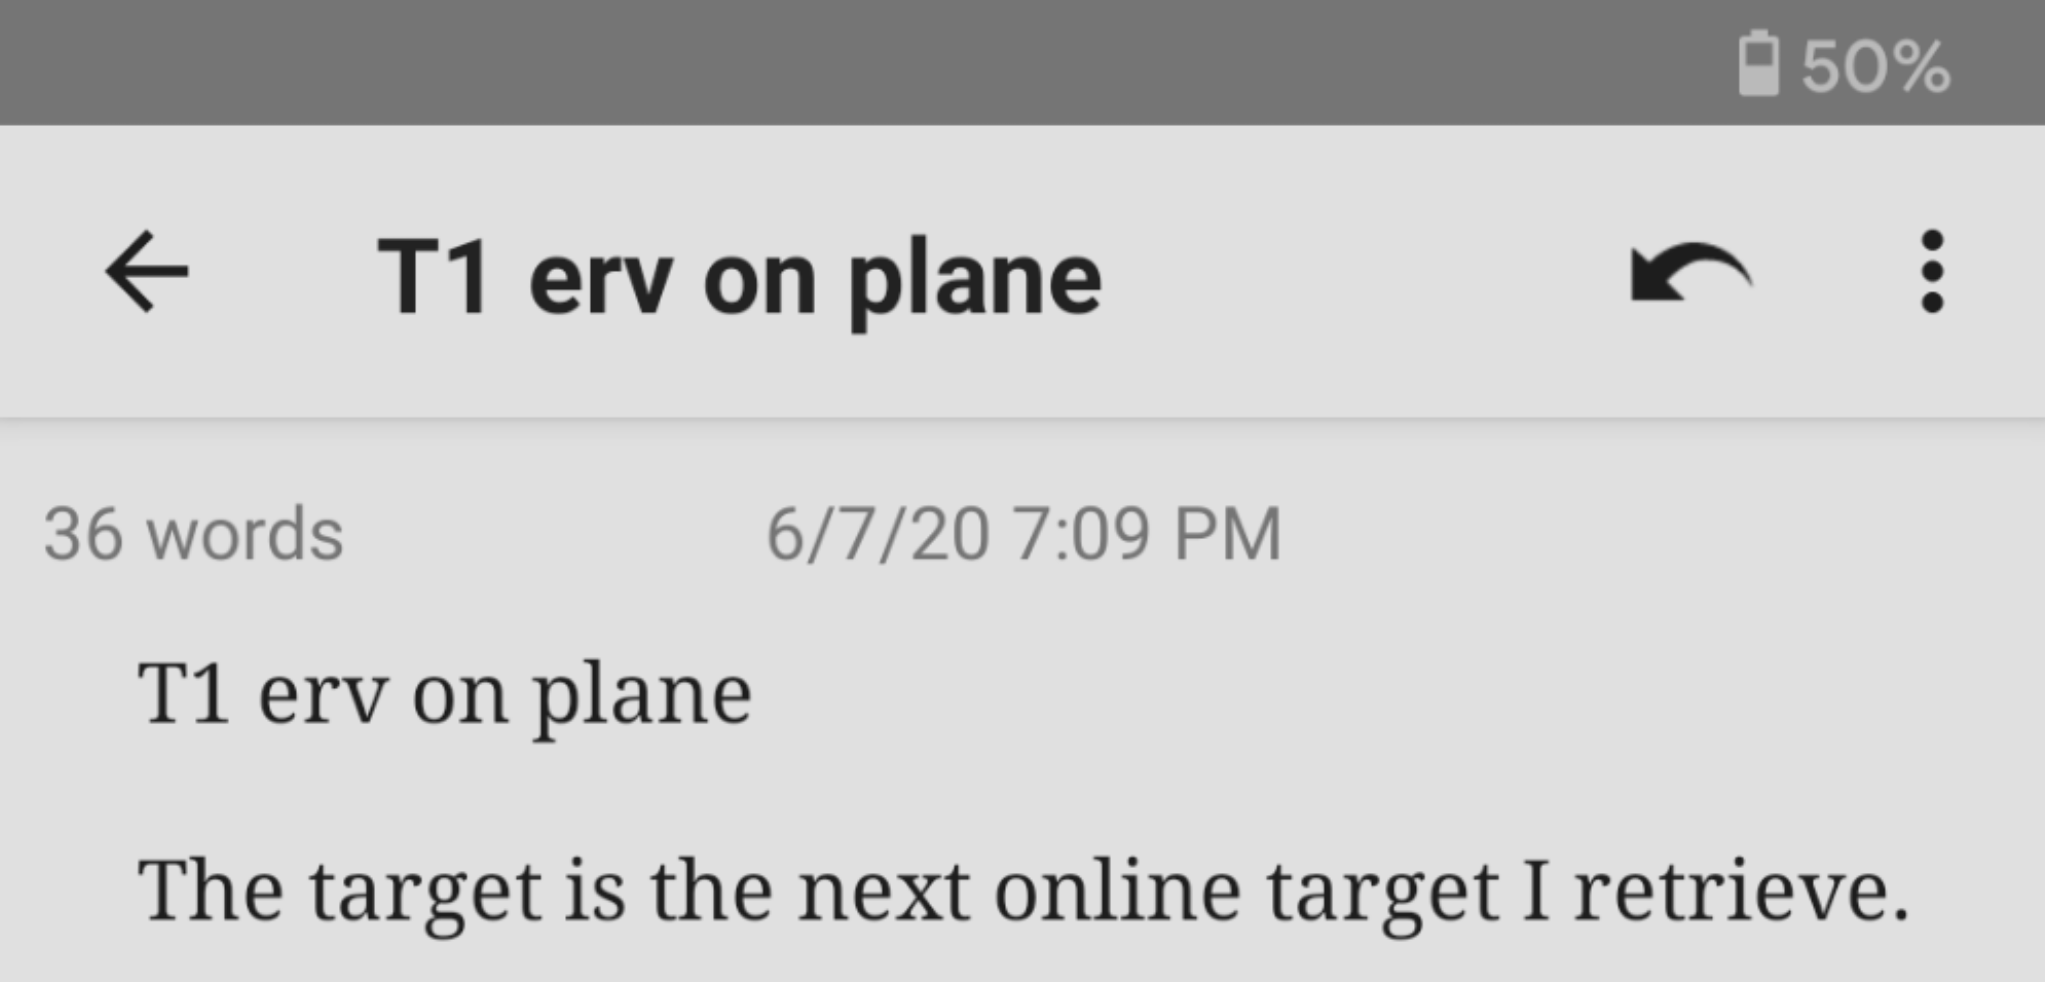 Note: T1 erv on plane—The target is the next online target I retrieve